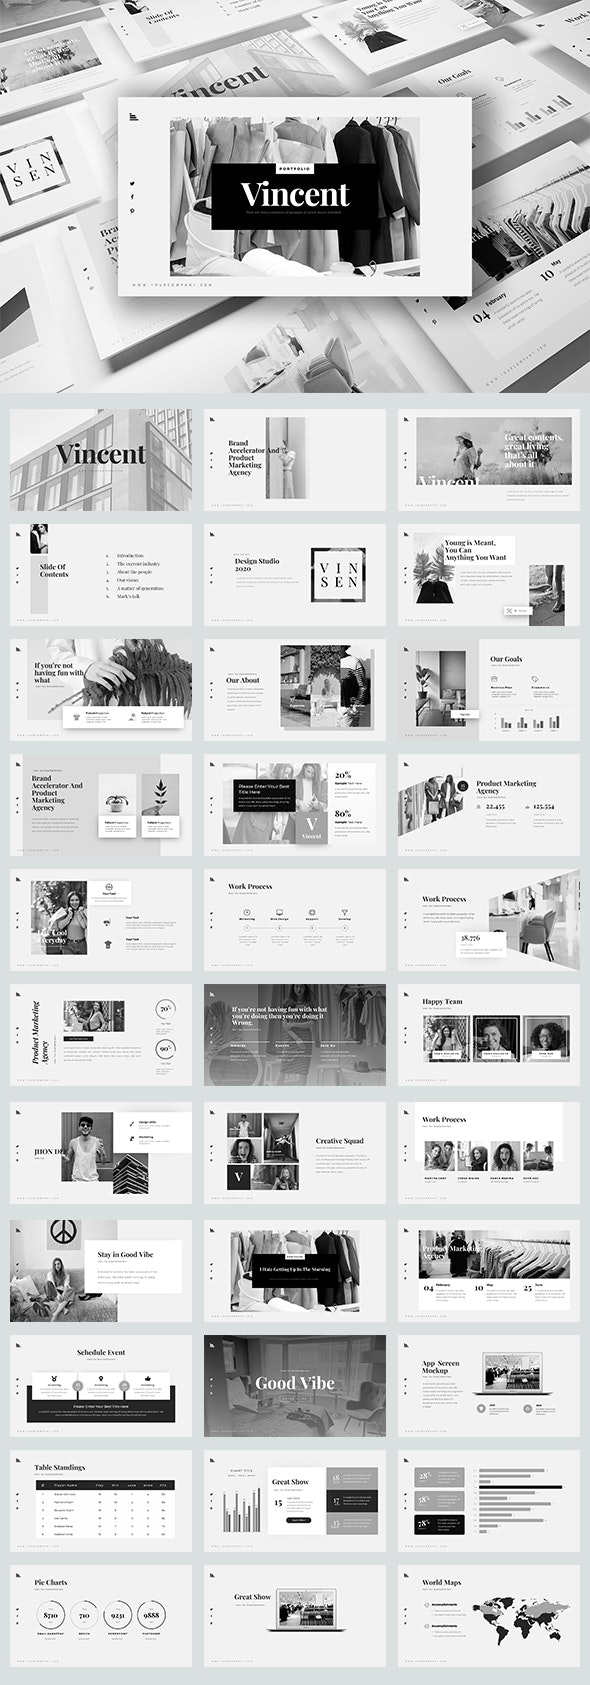 Vincent Keynote Templates - Business Keynote Templates